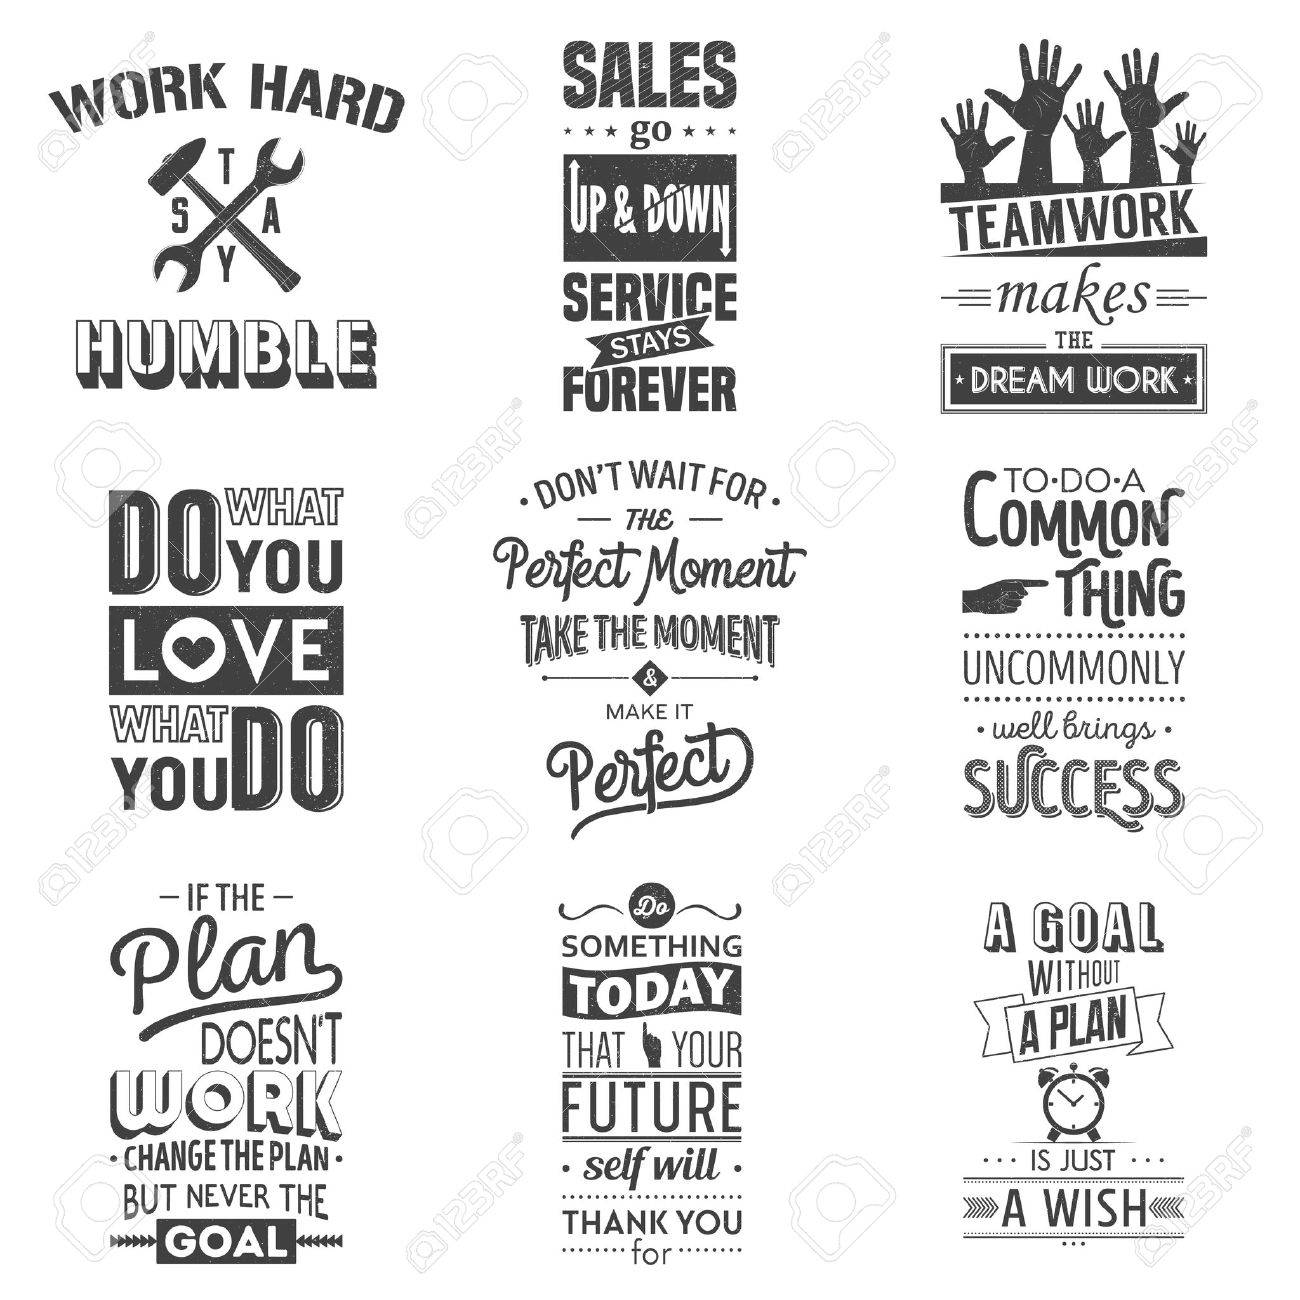 Set of vintage business motivation typographic quotes. Grunge effect can be edited or removed. Vector illustration. - 46482326